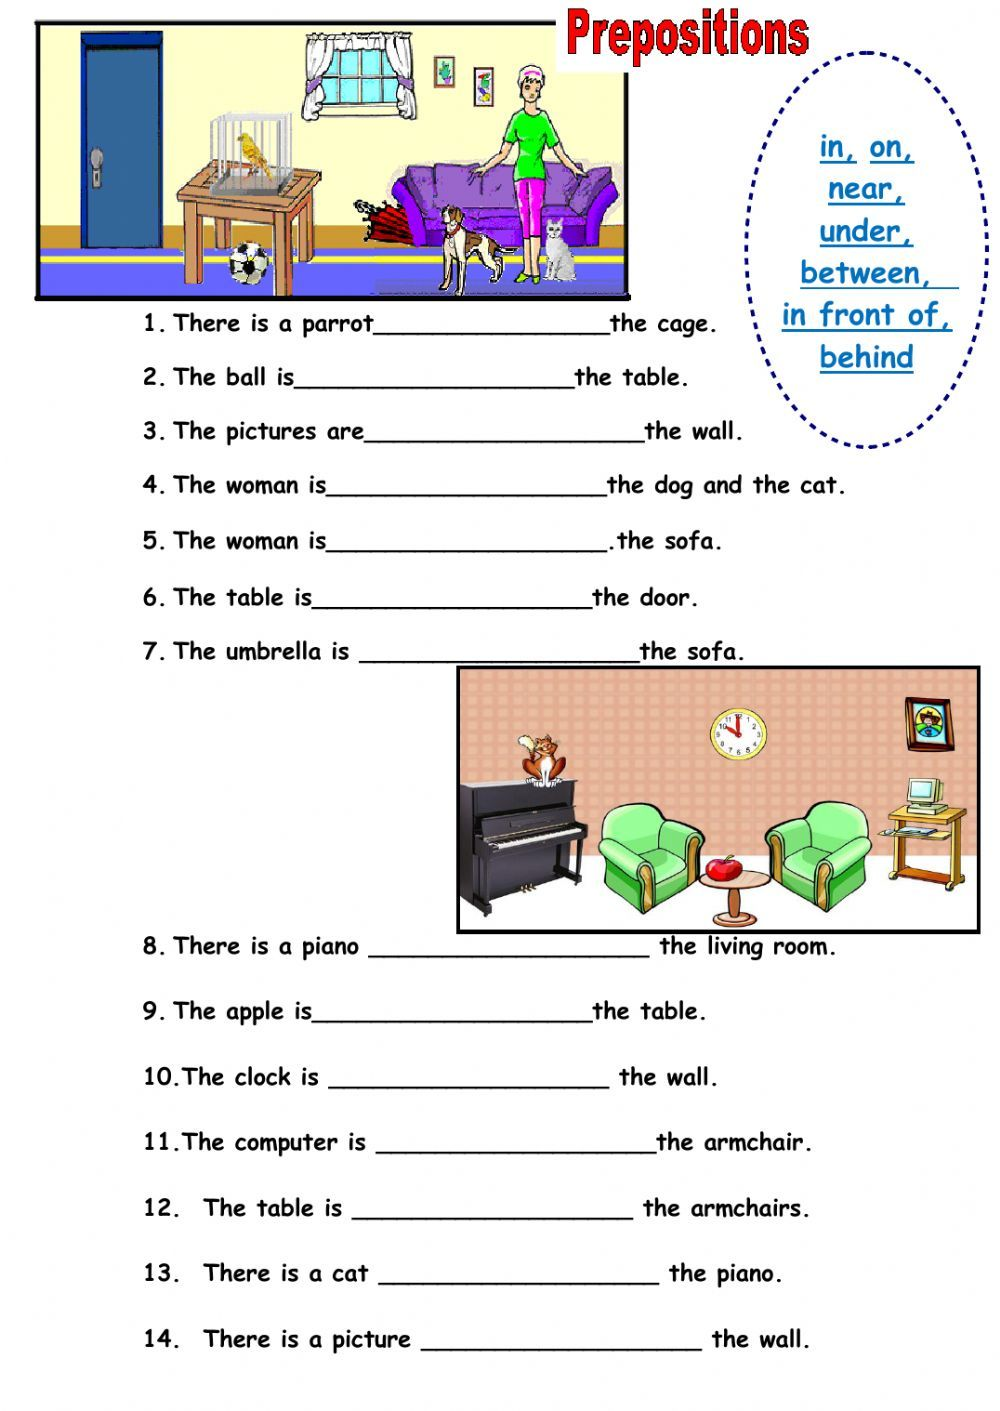 Worksheets Esl Preposition Worksheets prepositions of place interactive and downloadable worksheet check your answers online or send them to